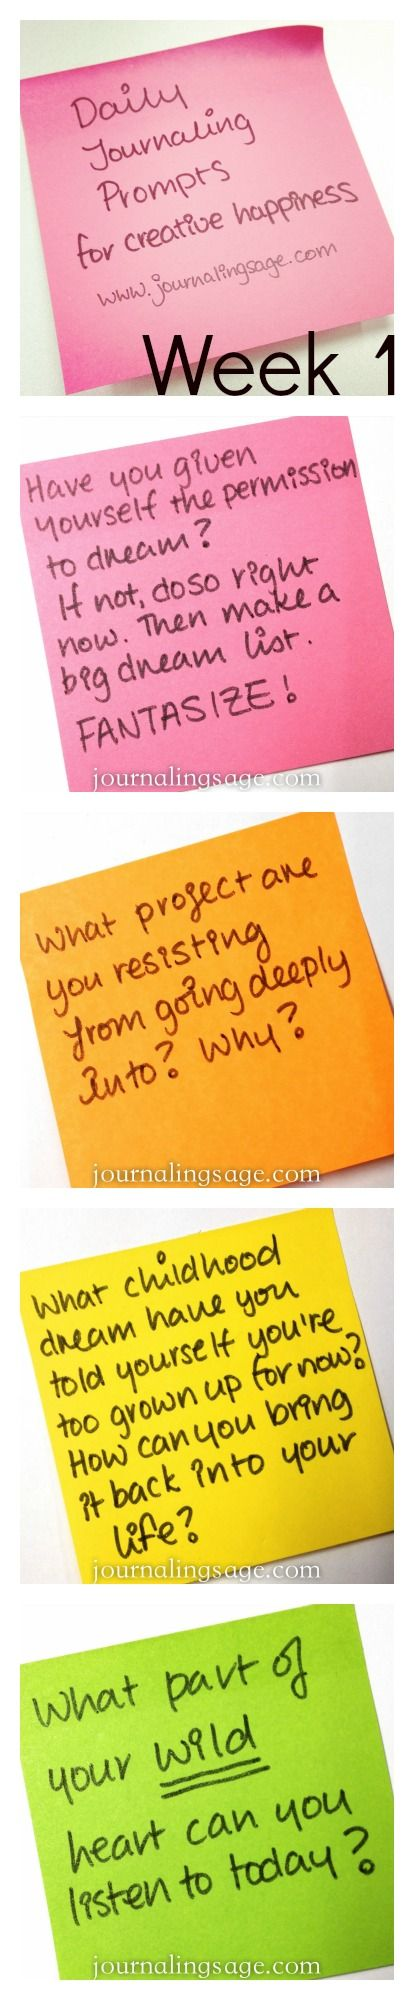 Daily Journaling Prompts for Creative Happiness - Week 1 prompts. http://journalingsage.com